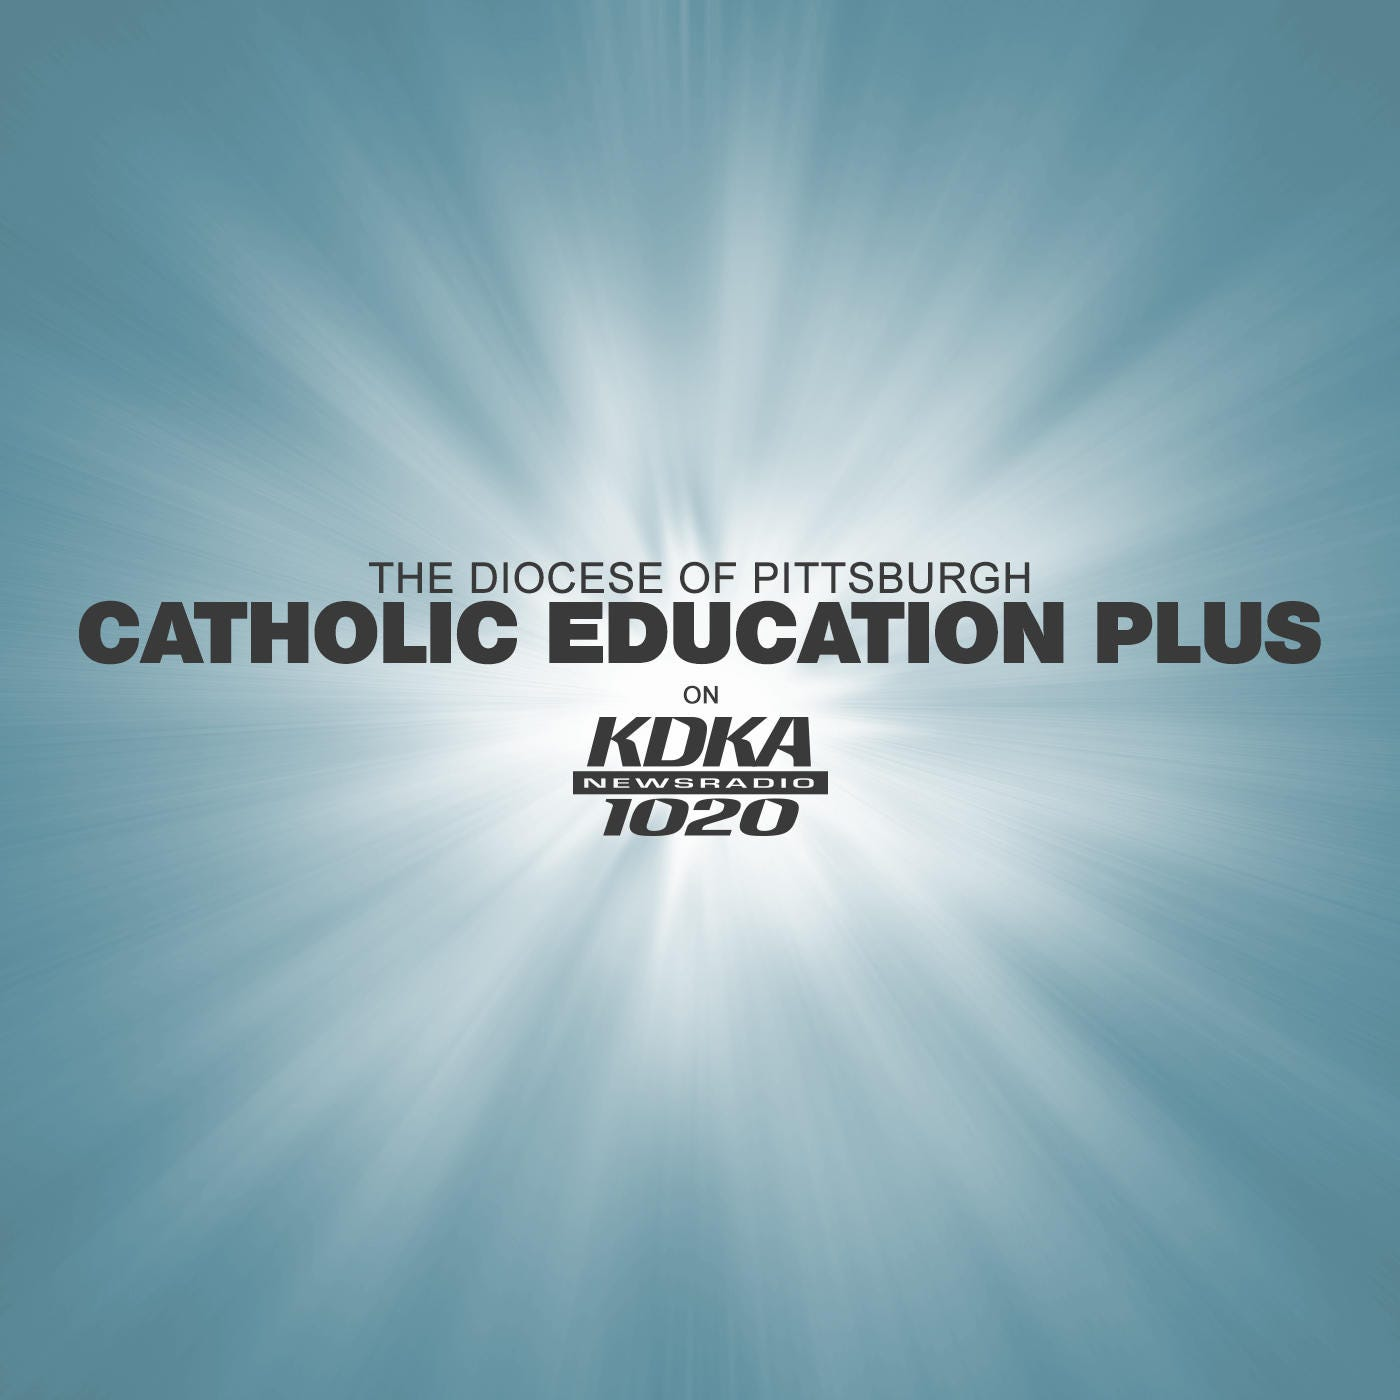 Catholic Education Plus